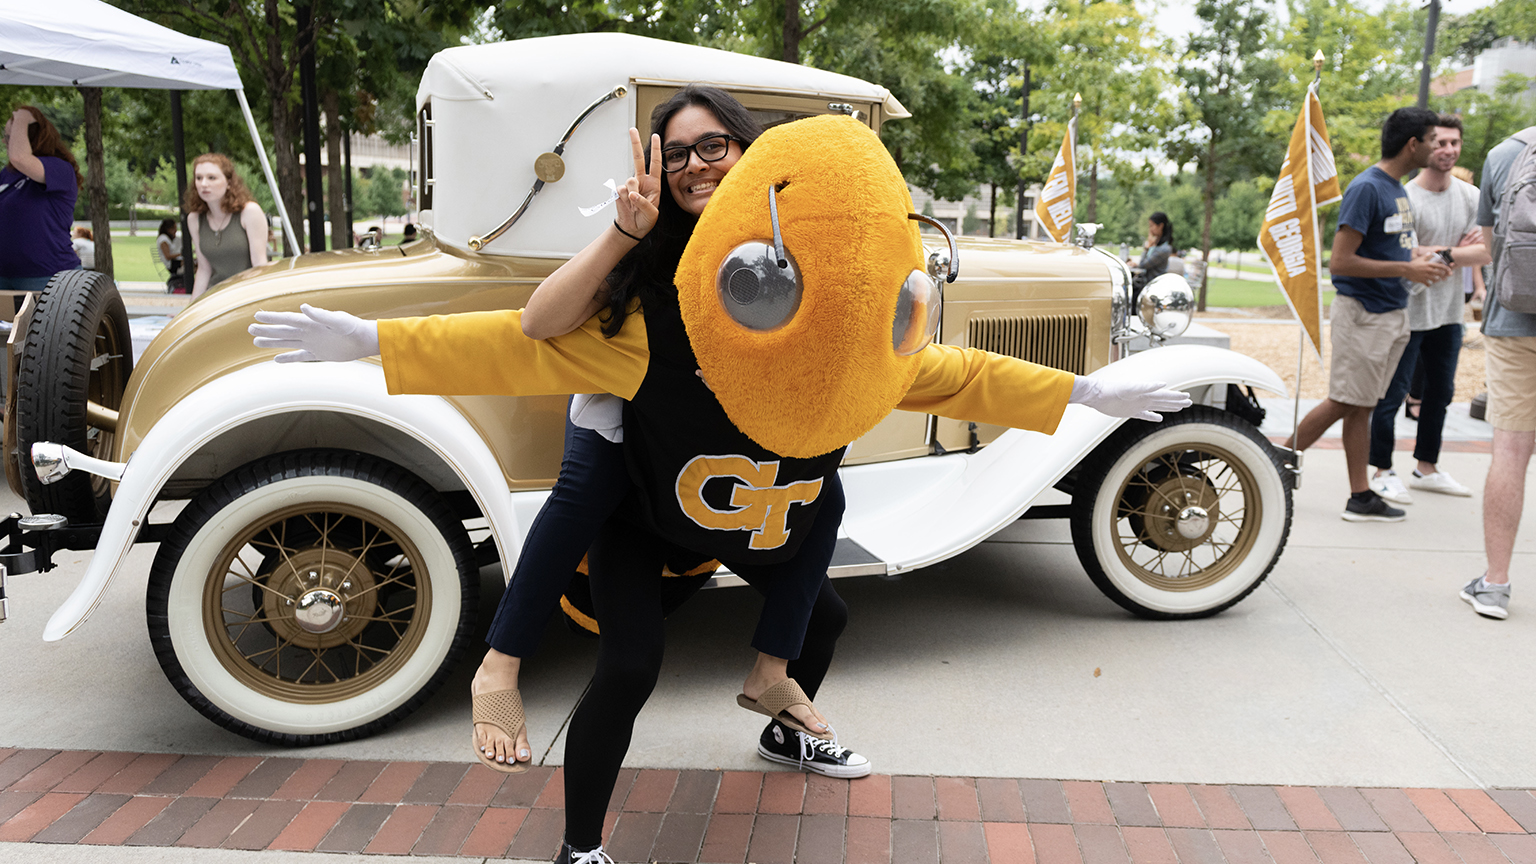 Buzz and a student celebrating being at Georgia Tech.